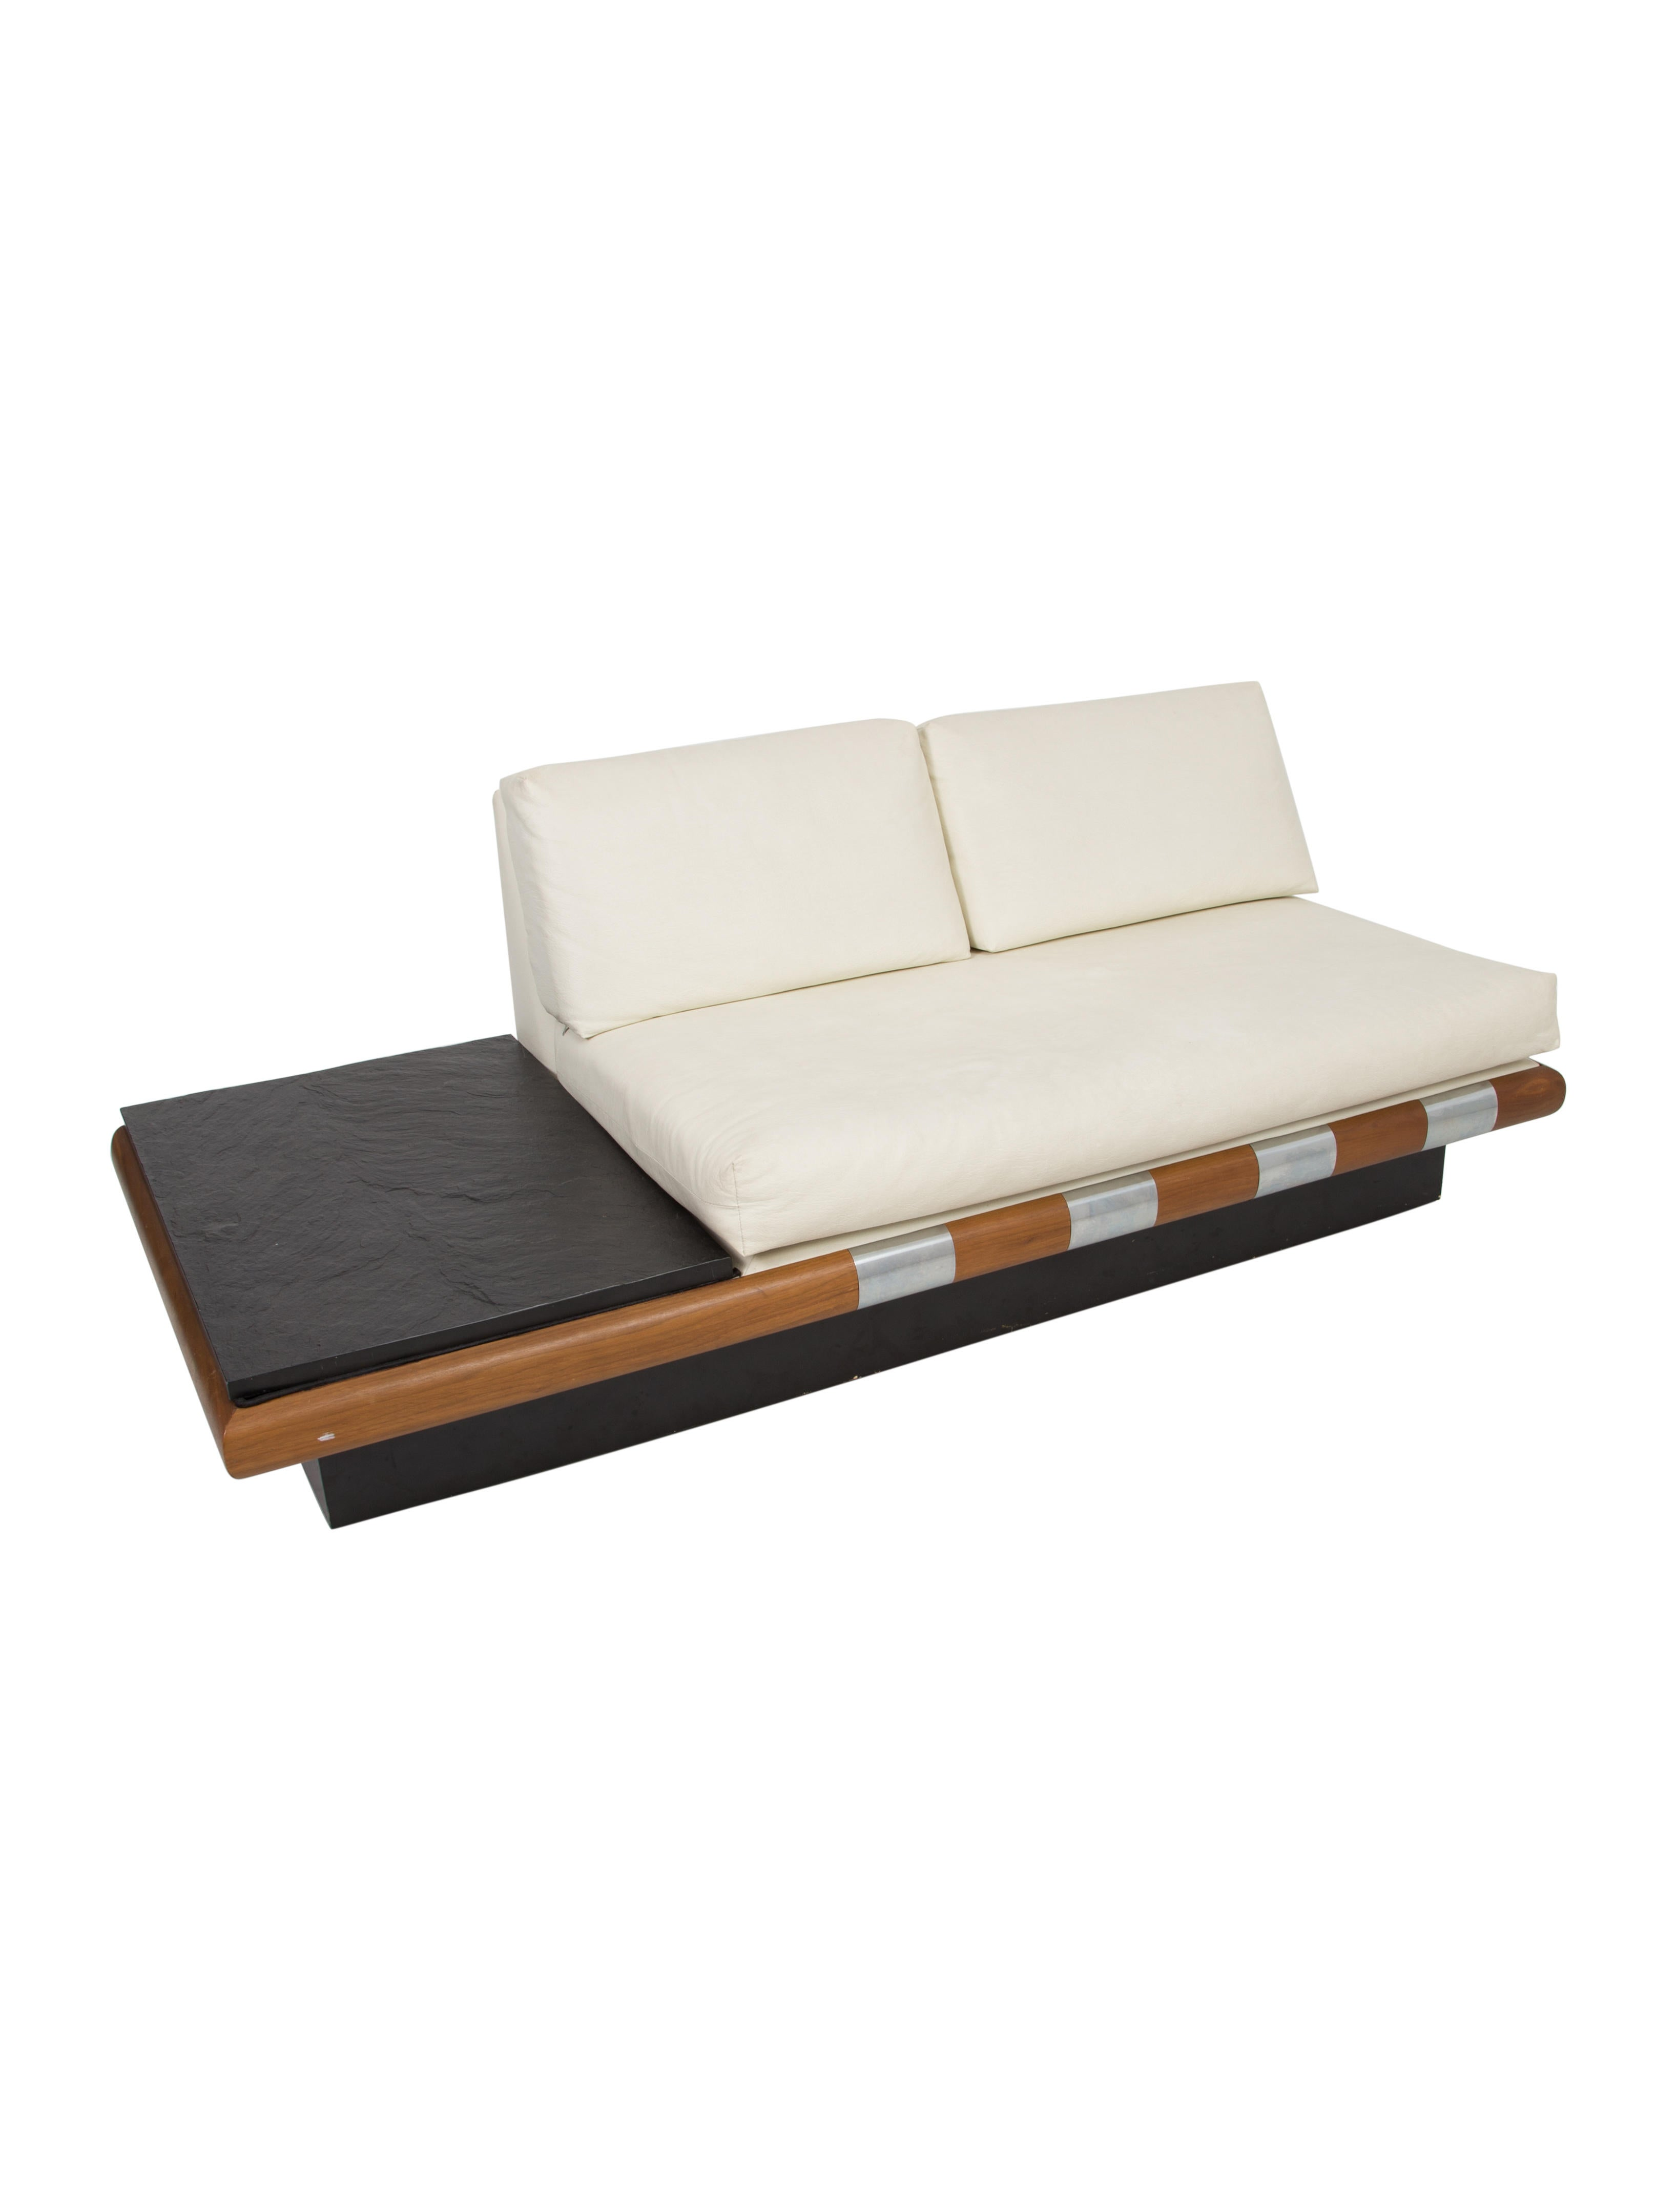 Adrian pearsall upholstered leather sofa with end table for Sofa end tables